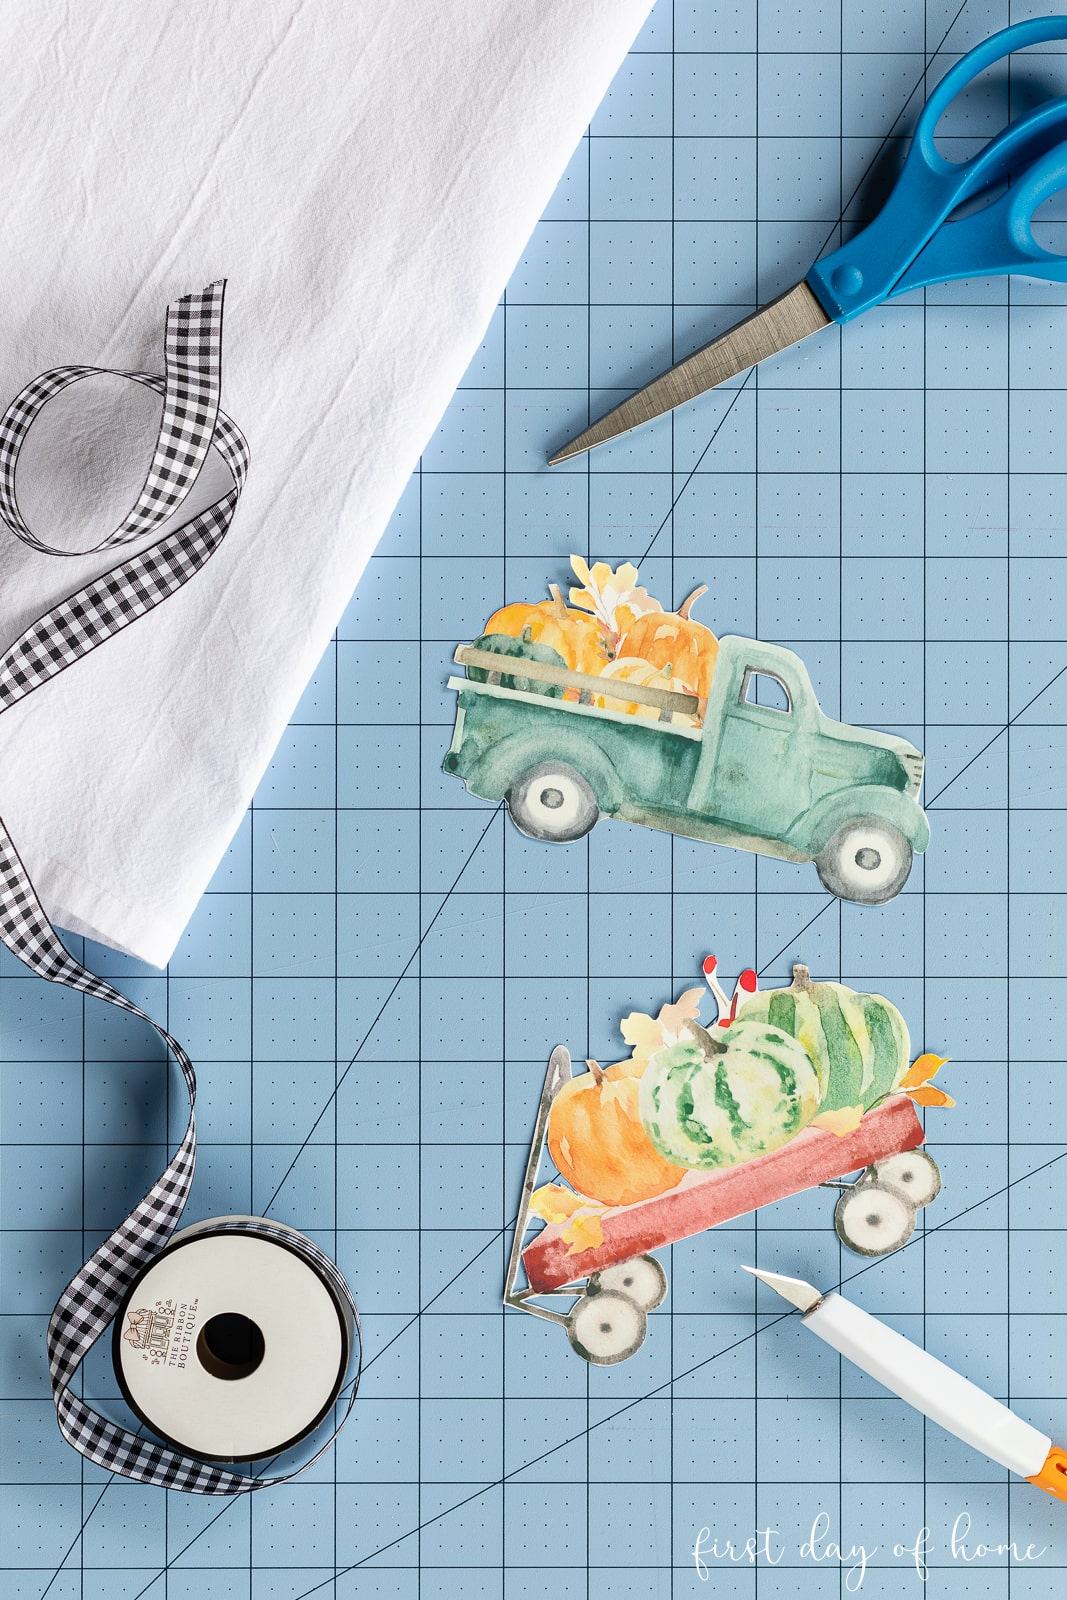 Cutouts of images for image transfer to make DIY tea towels